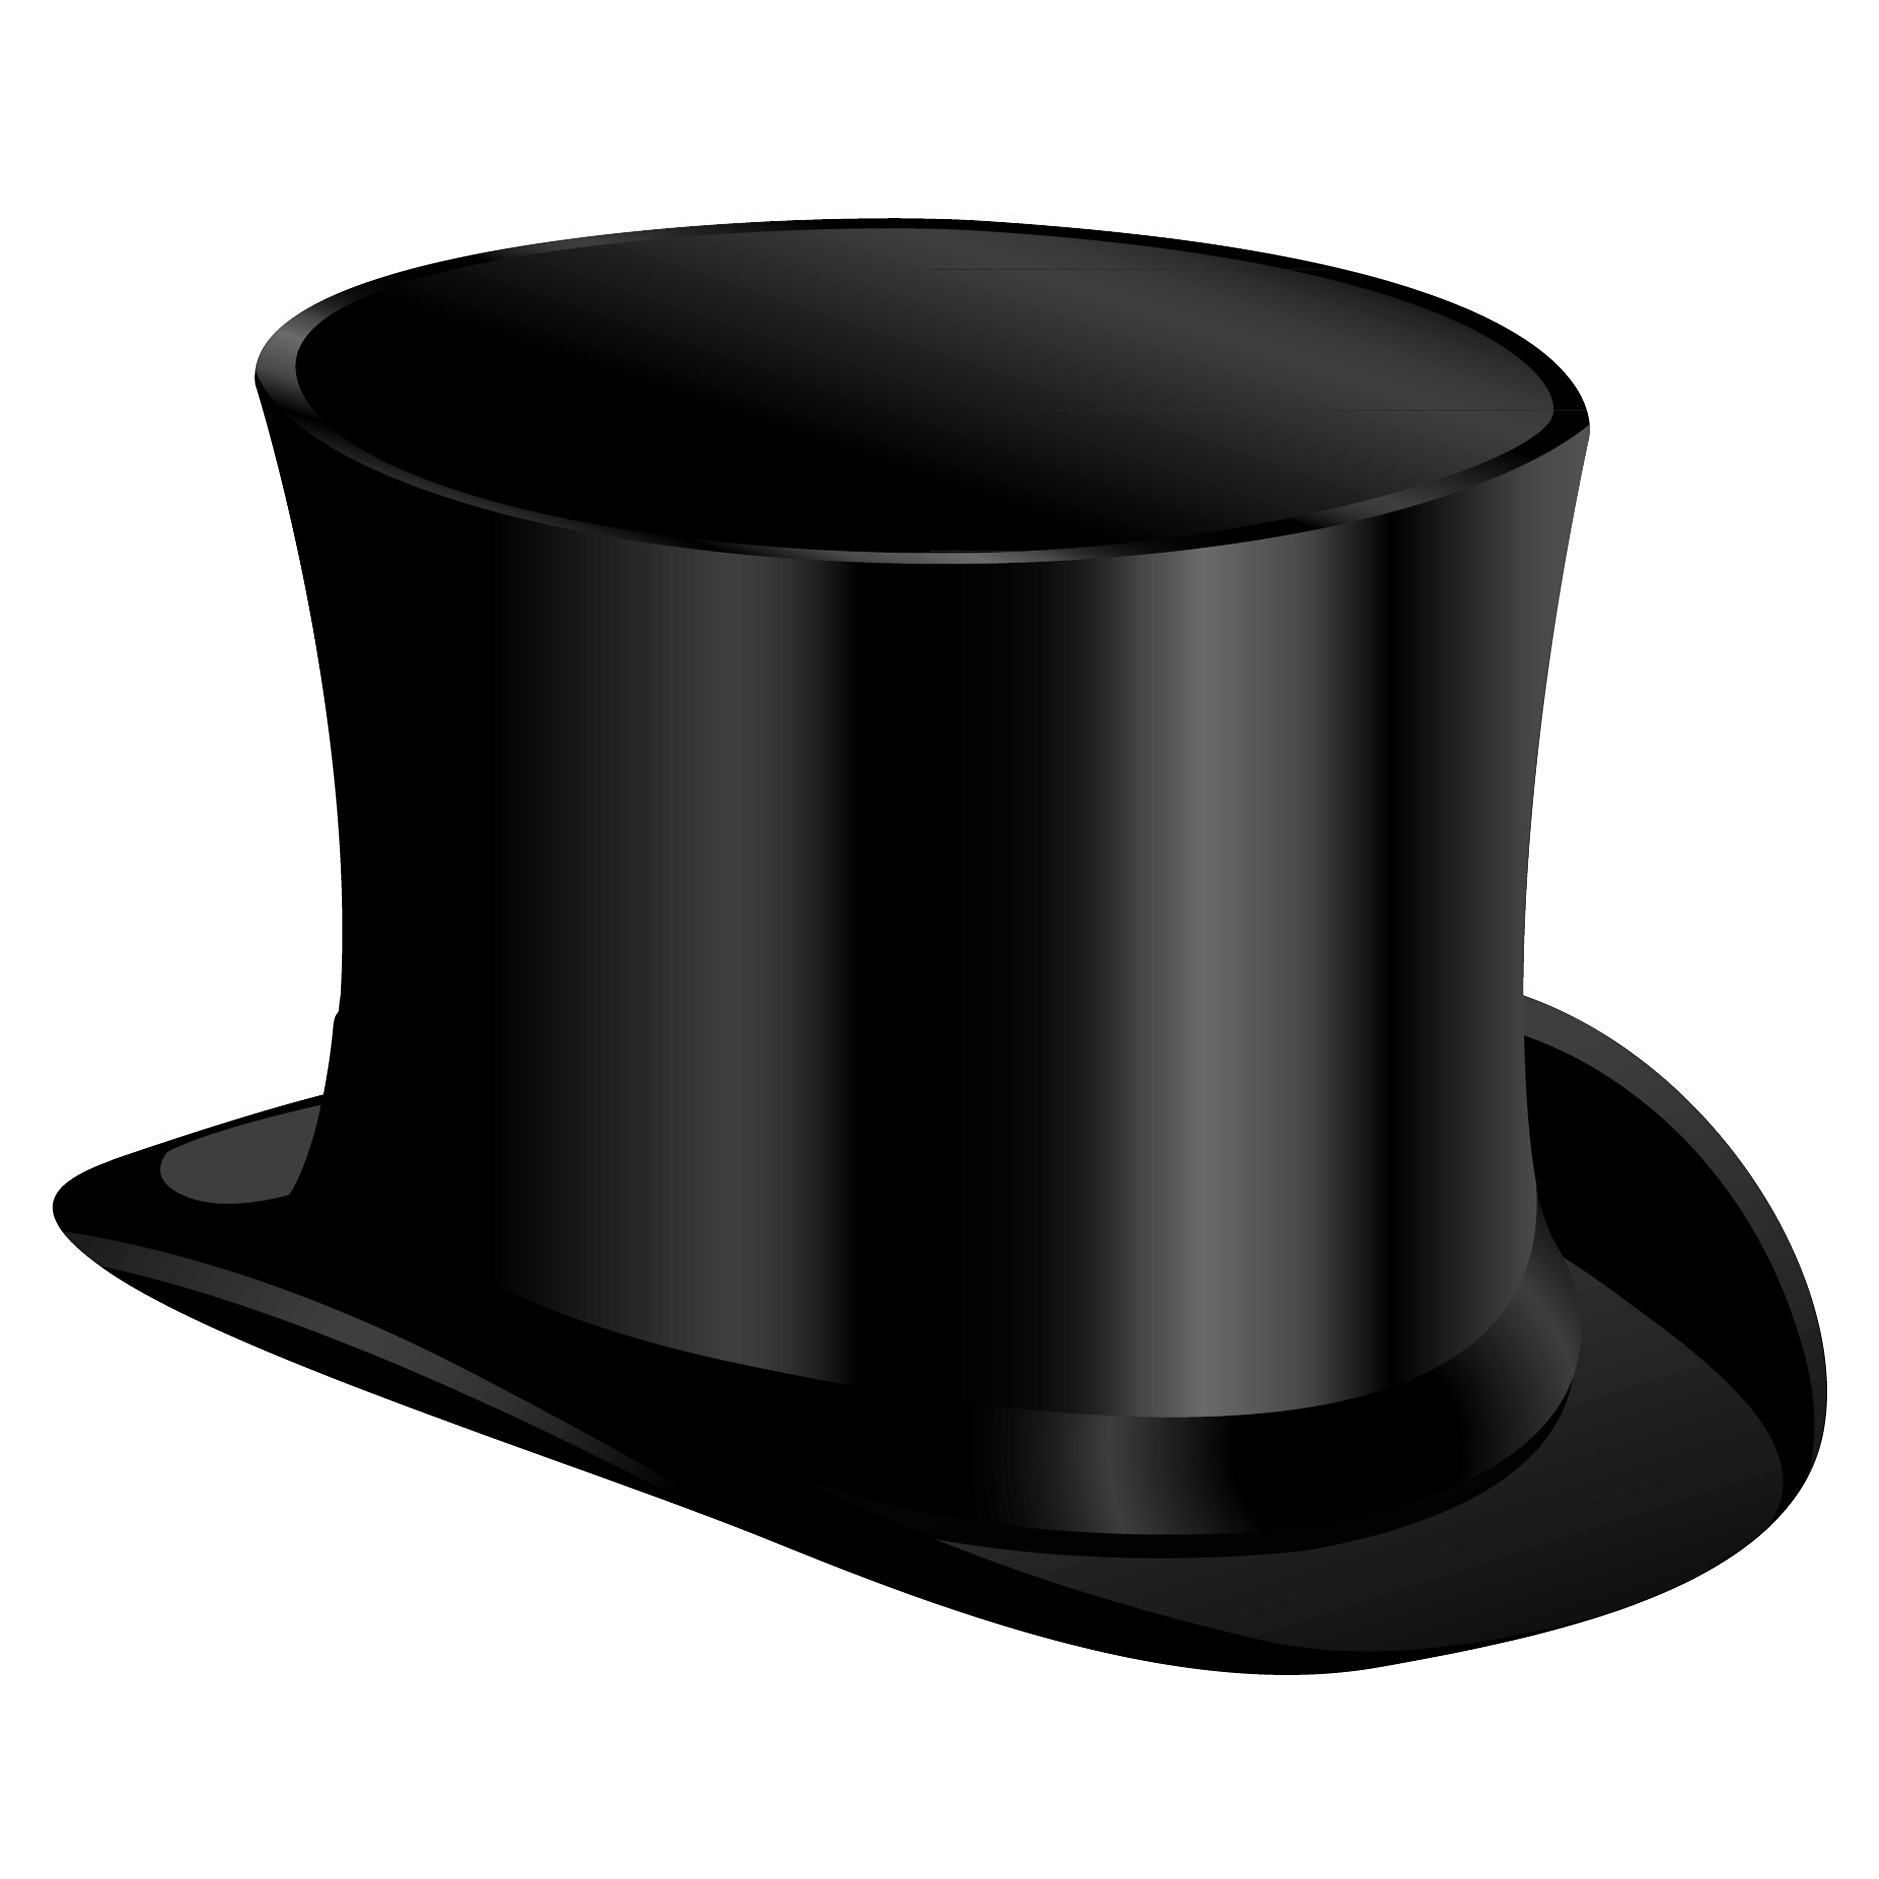 Top Hat Png Free Top Hat Png Transparent Images 1297 Pngio